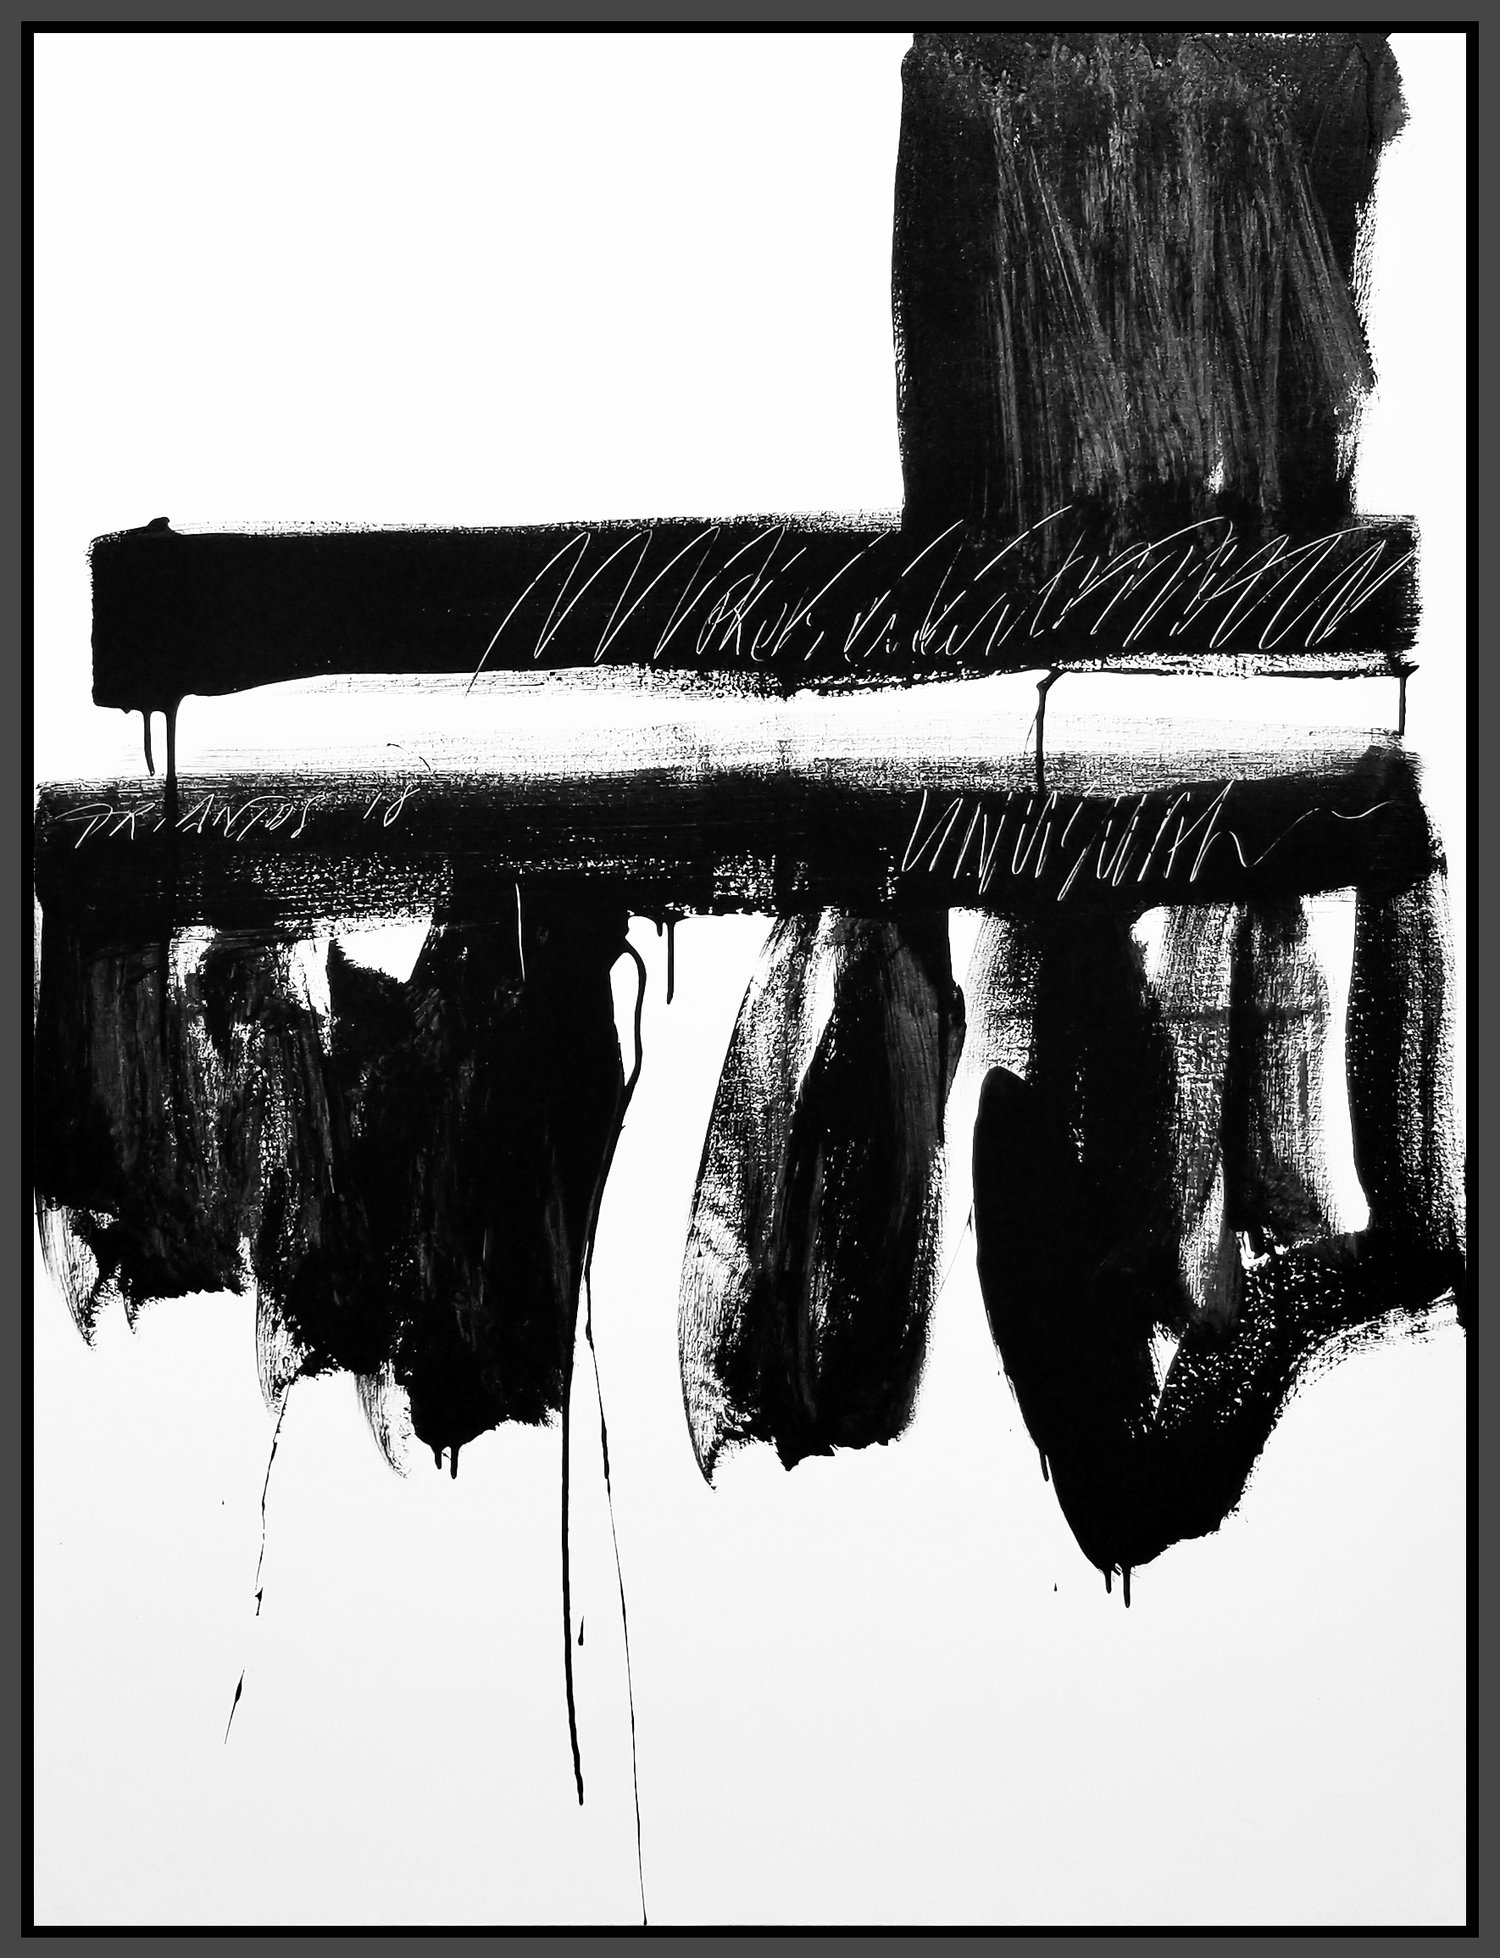 "Black and White #63, 2018, acrylic on canvas, 48"" x 36"" (122 x 91.4 cm)"